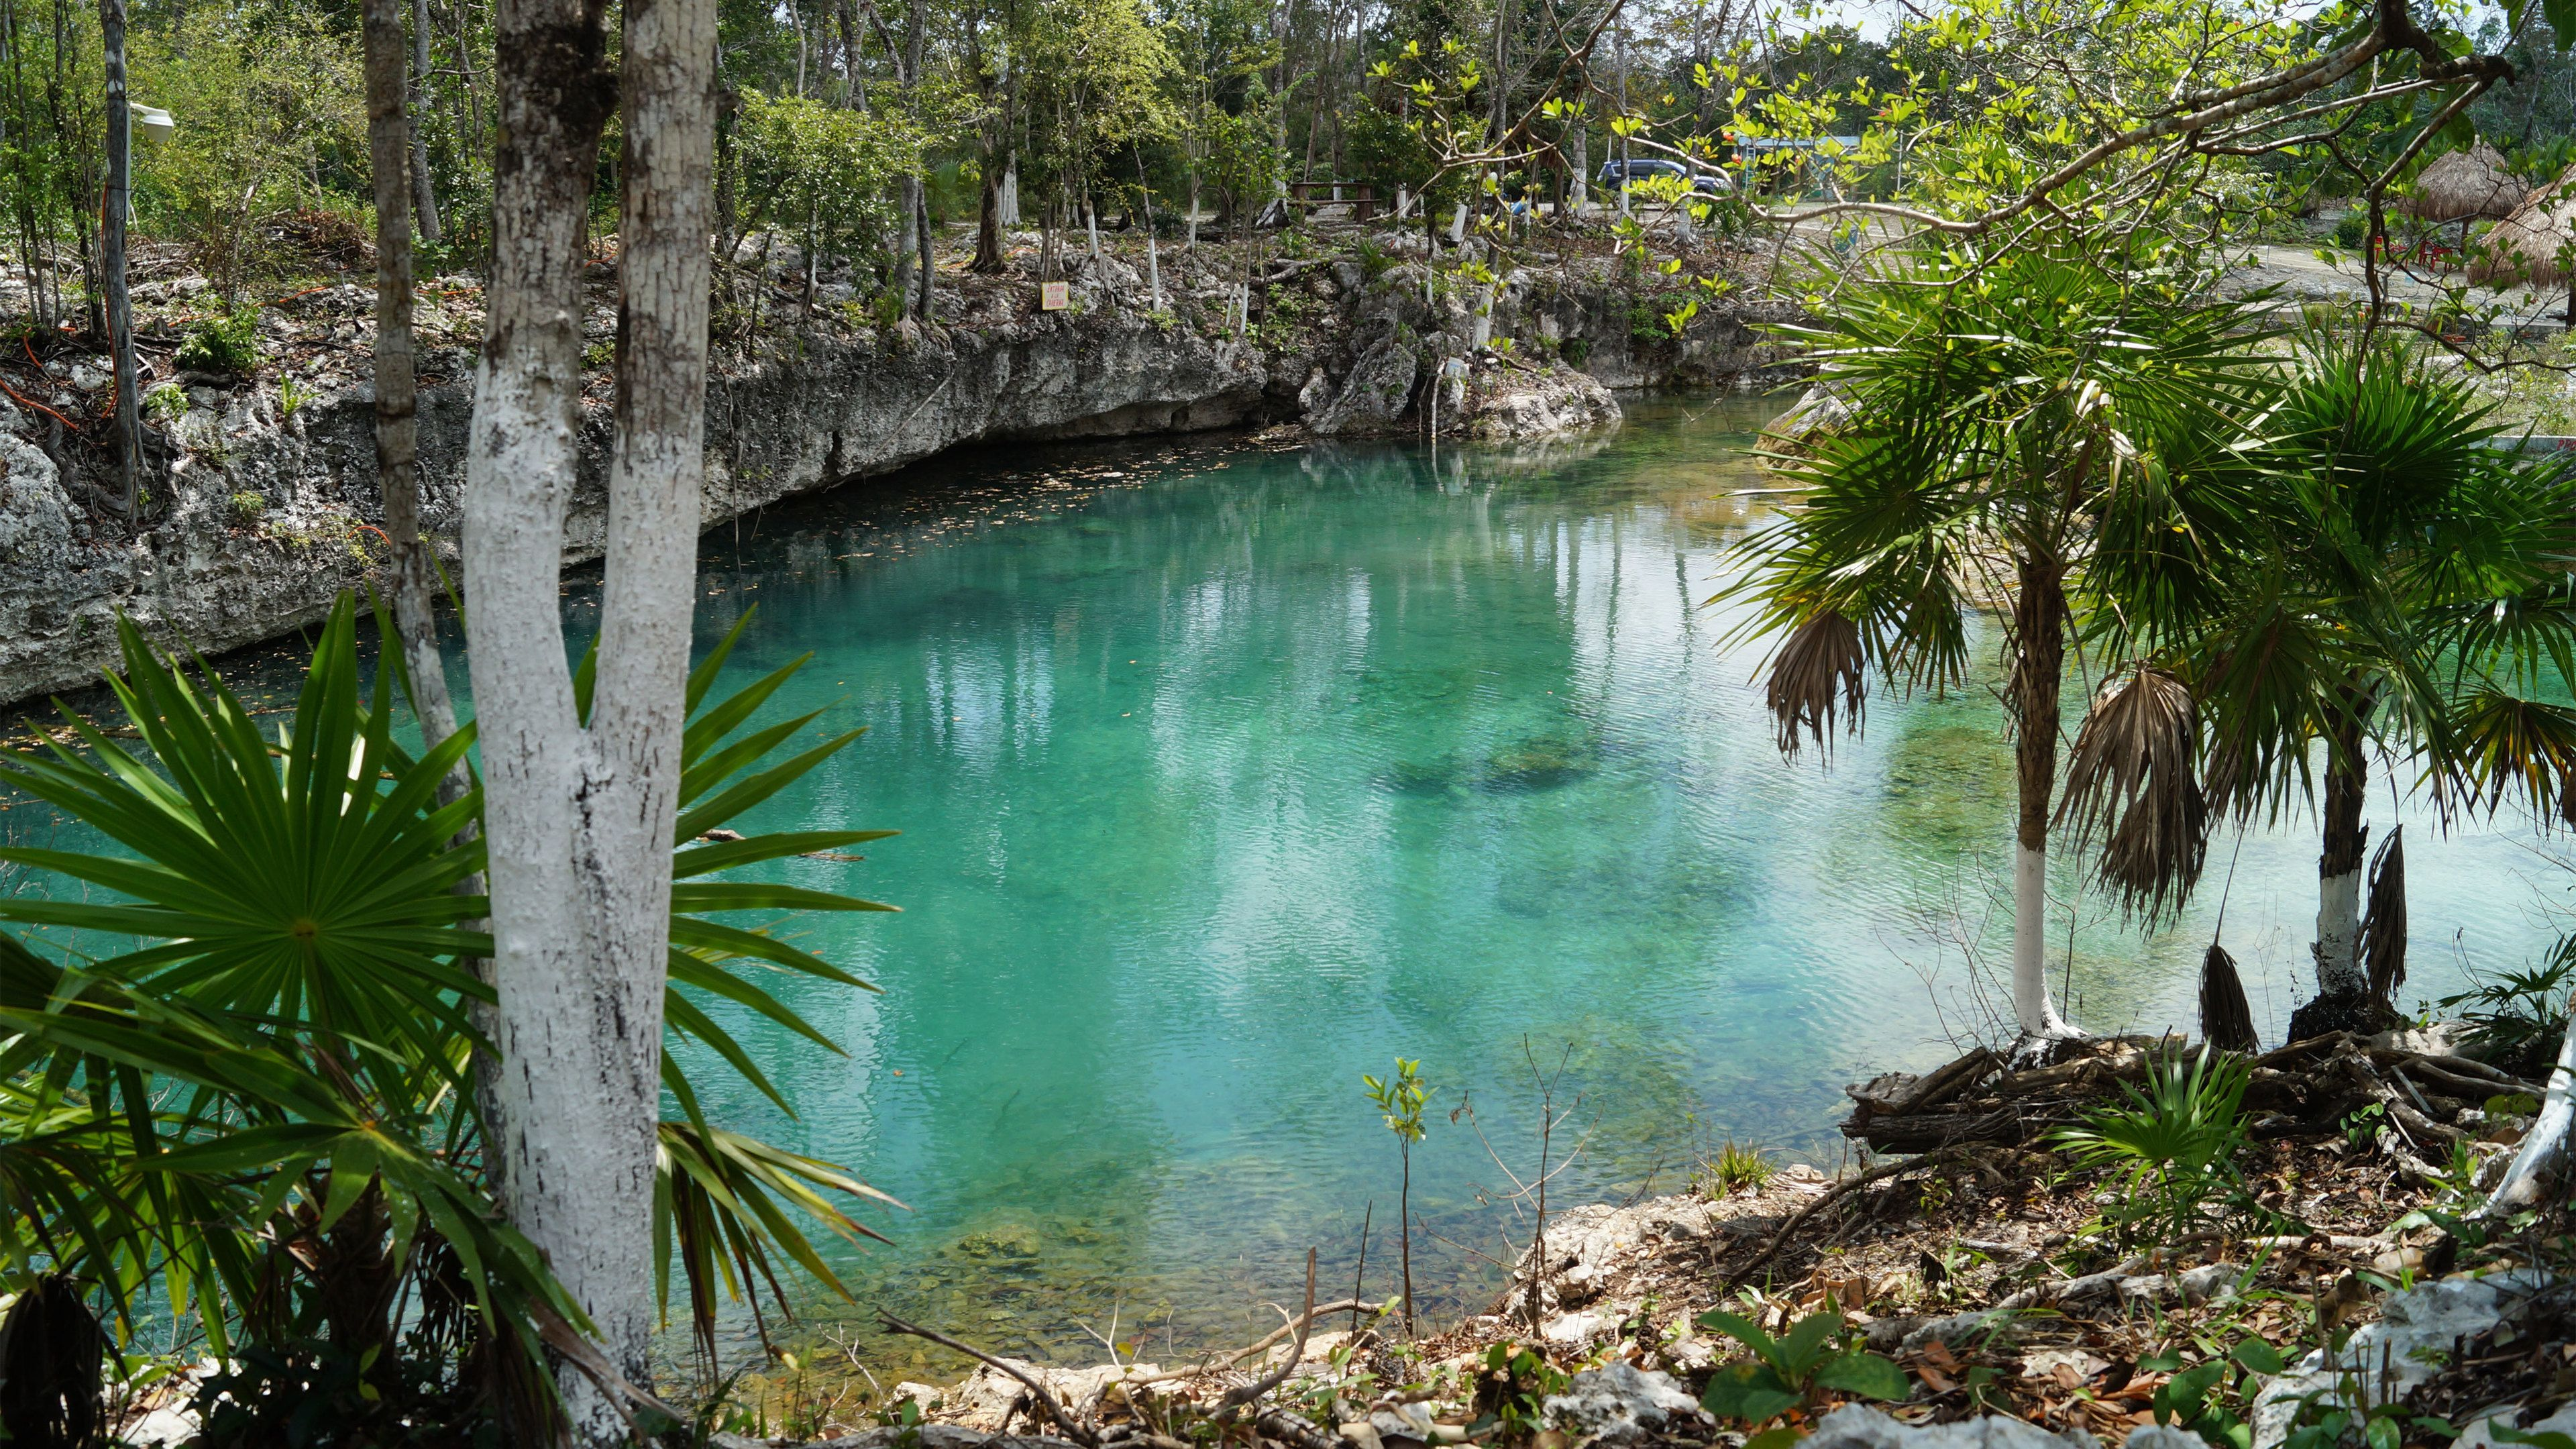 Clear water of a cenote in Mexico